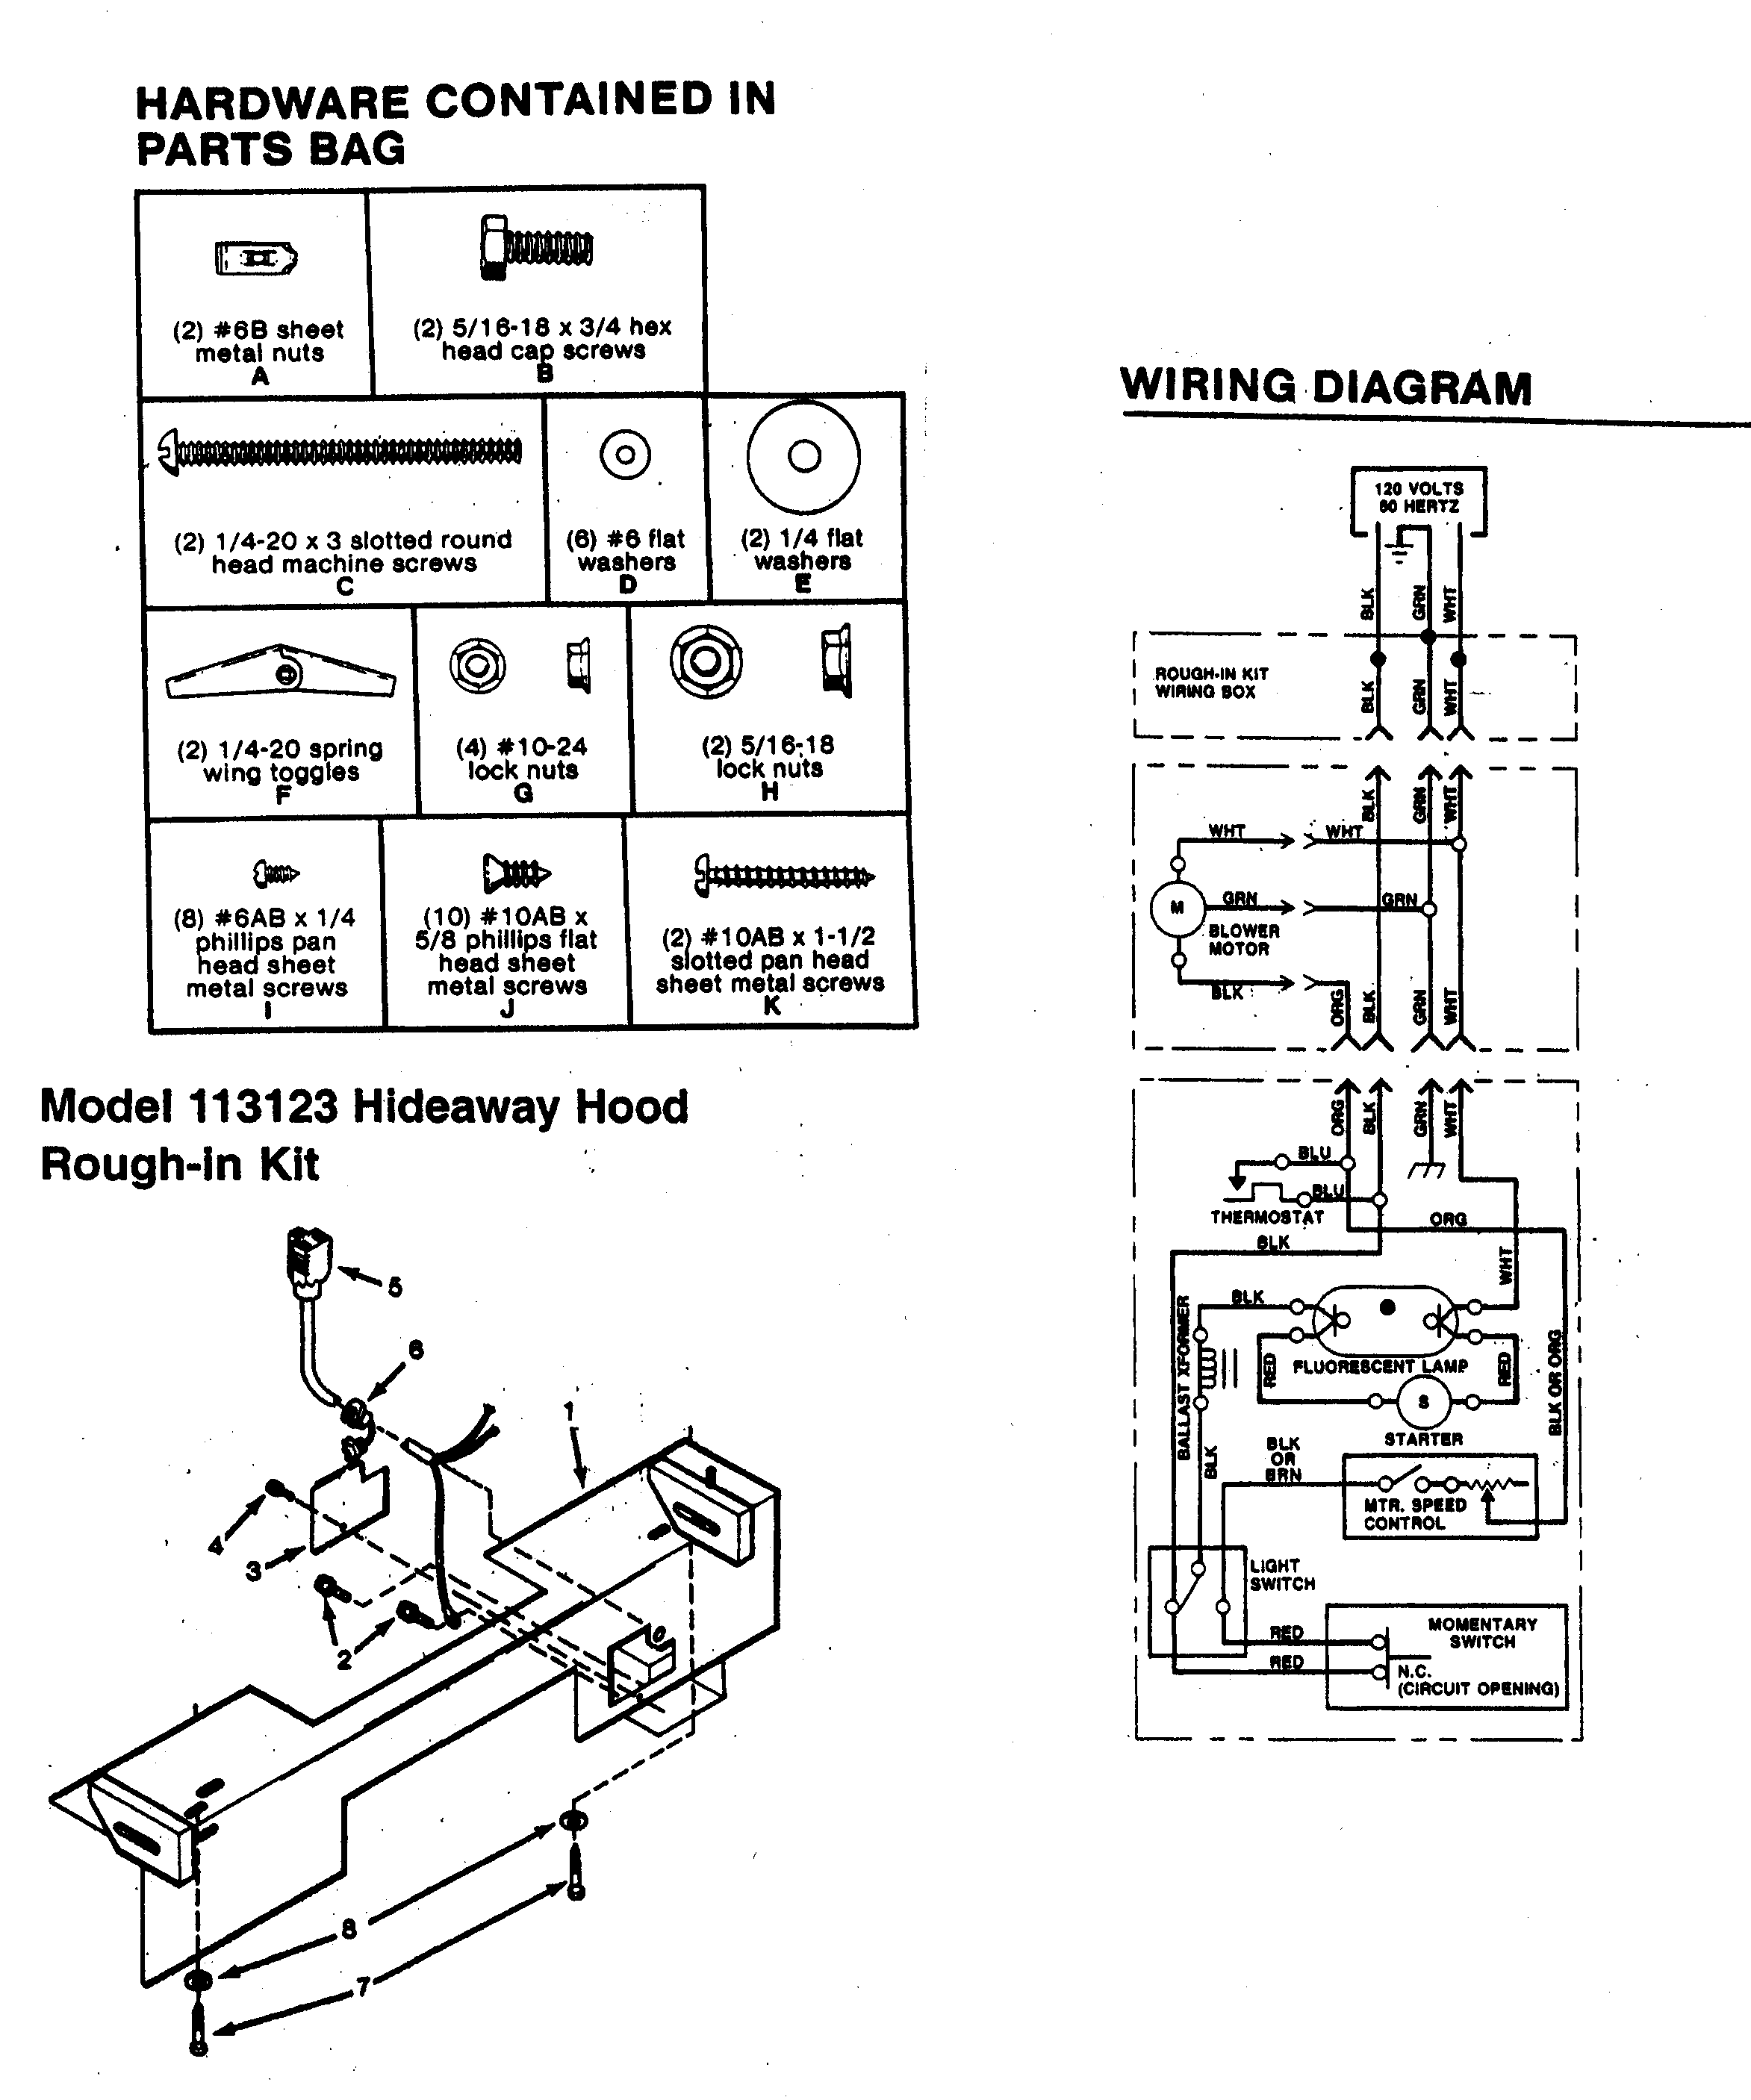 small resolution of unique wiring diagram for electric stove outlet diagram diagramsample diagramtemplate wiringdiagram